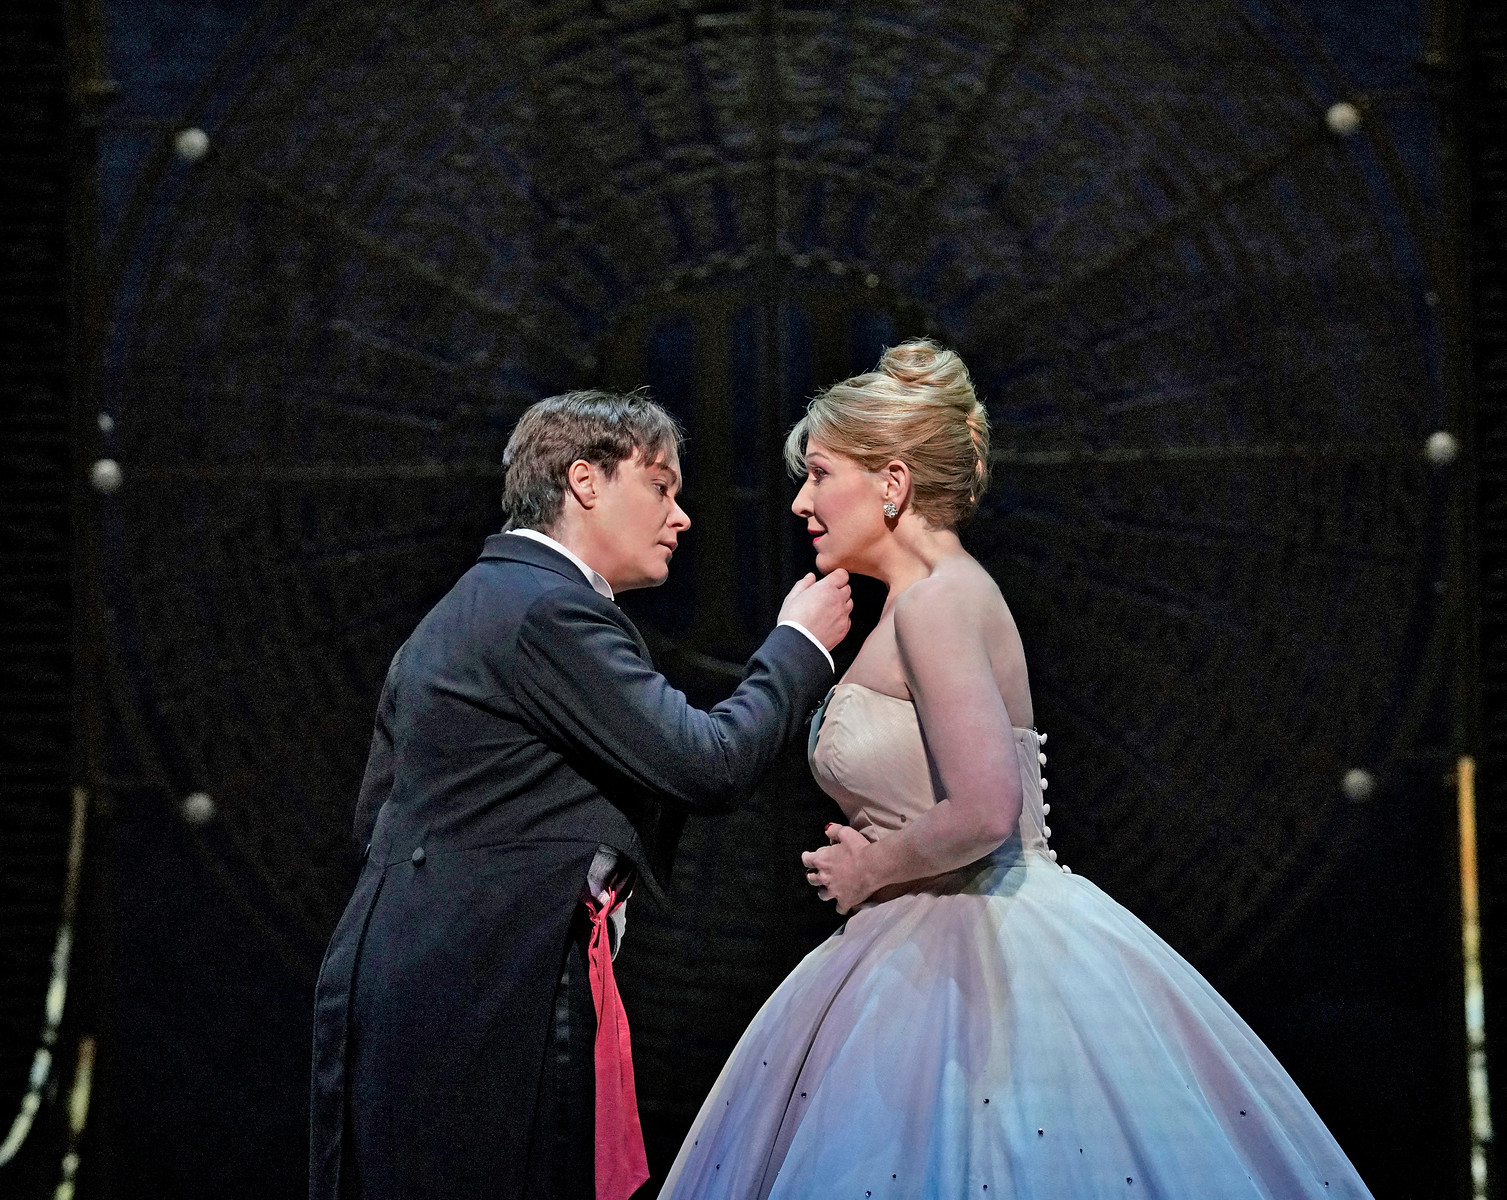 Love happens - Alice Coote as Prince Charming and Joyce DiDonato as Cendrillon. Photo by Ken Howard; courtesy of the Metropolitan Opera.